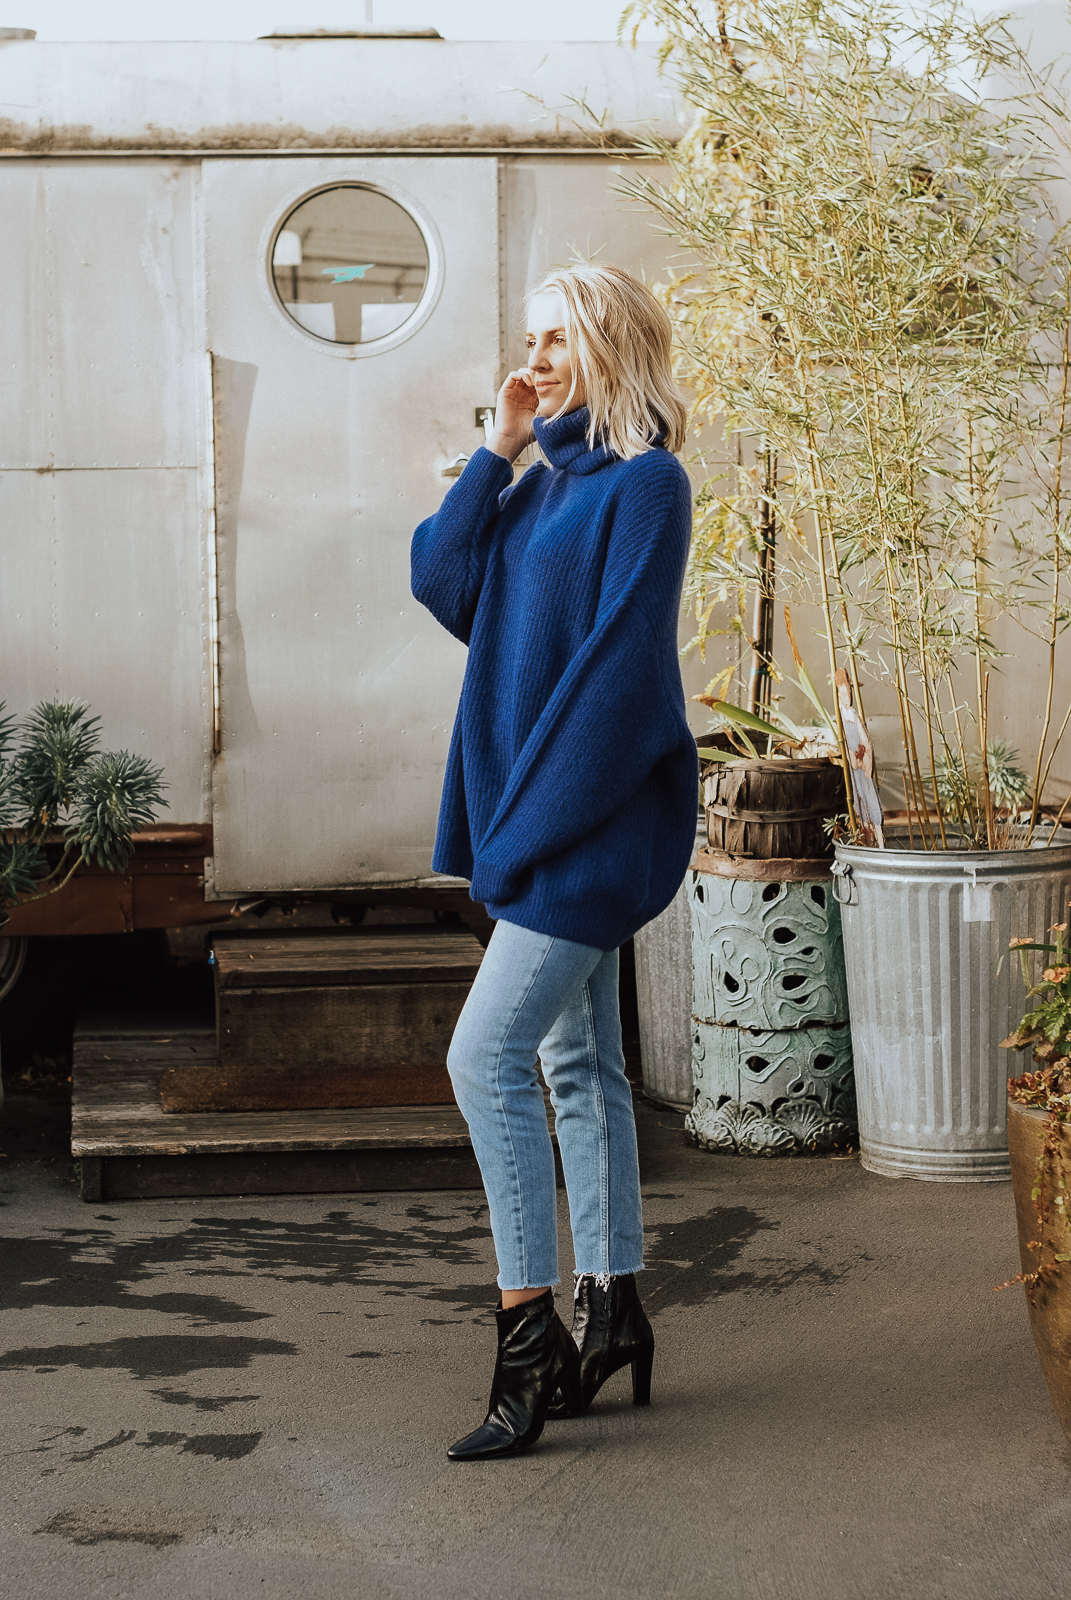 Autumn Sorelle | How to Spice Up an Oversized Sweater